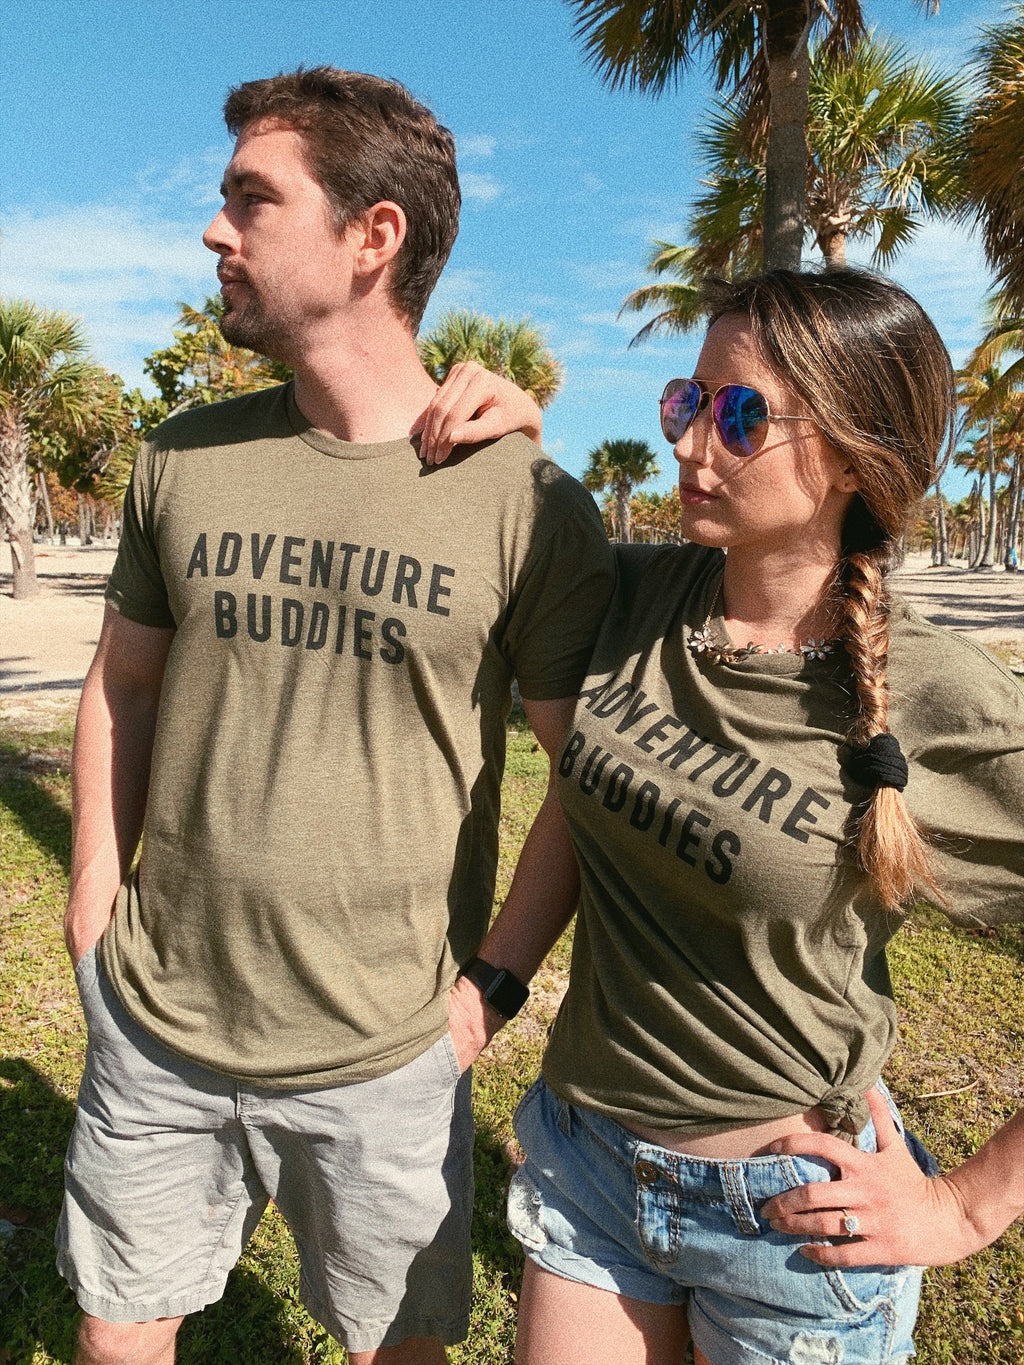 What better way to adventure the world than with your loved one in these cute matching adventure buddies tshirts! These super soft and cute tees are perfect to take on your next vacation whether it's on your honeymoon or a weekend getaway with your best friends!